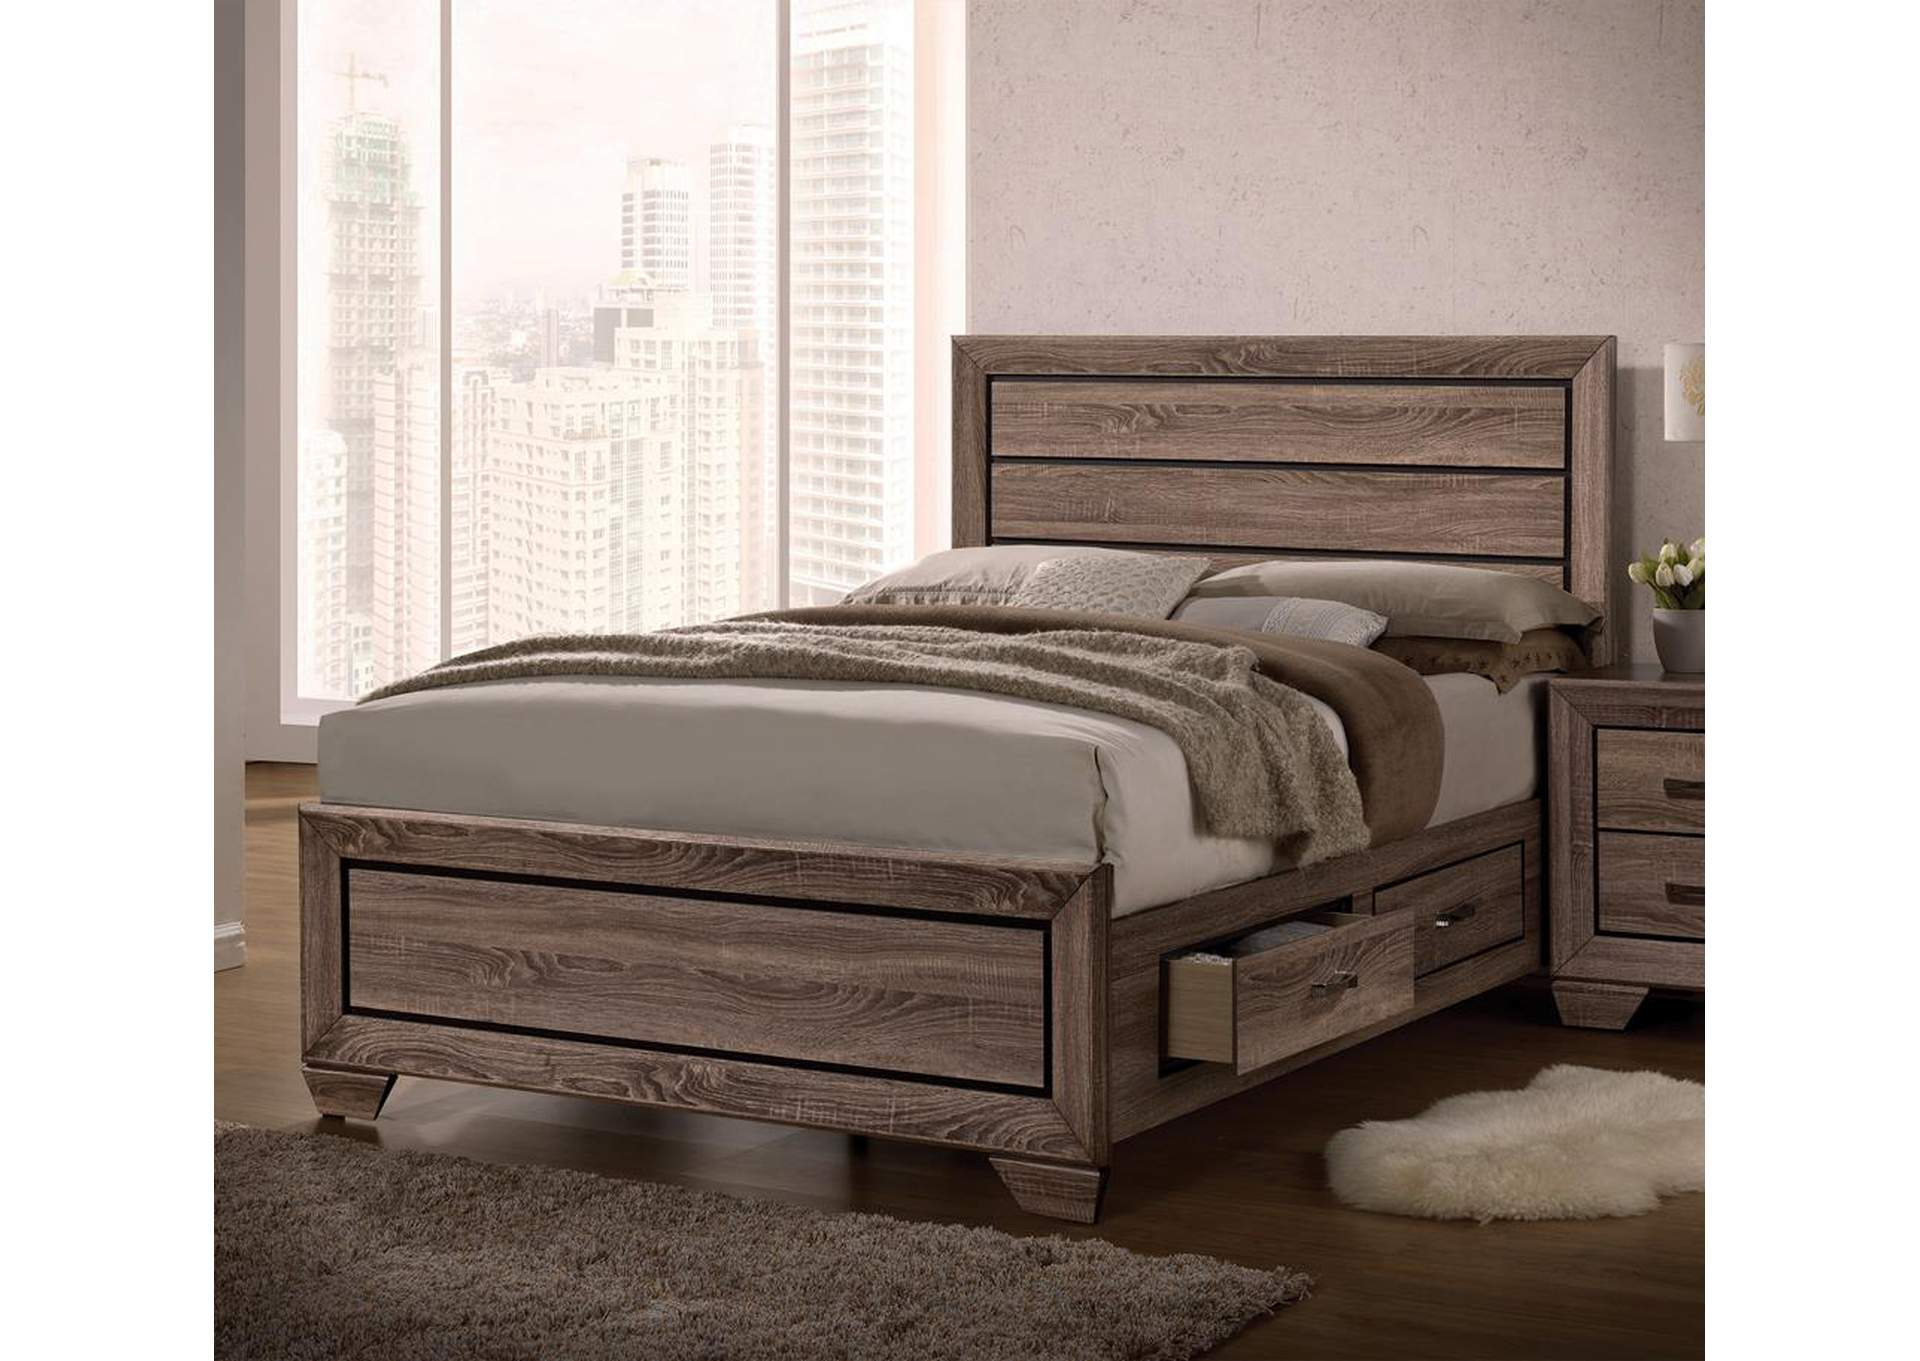 Washed Taupe Kauffman Transitional Queen Bed,Coaster Furniture